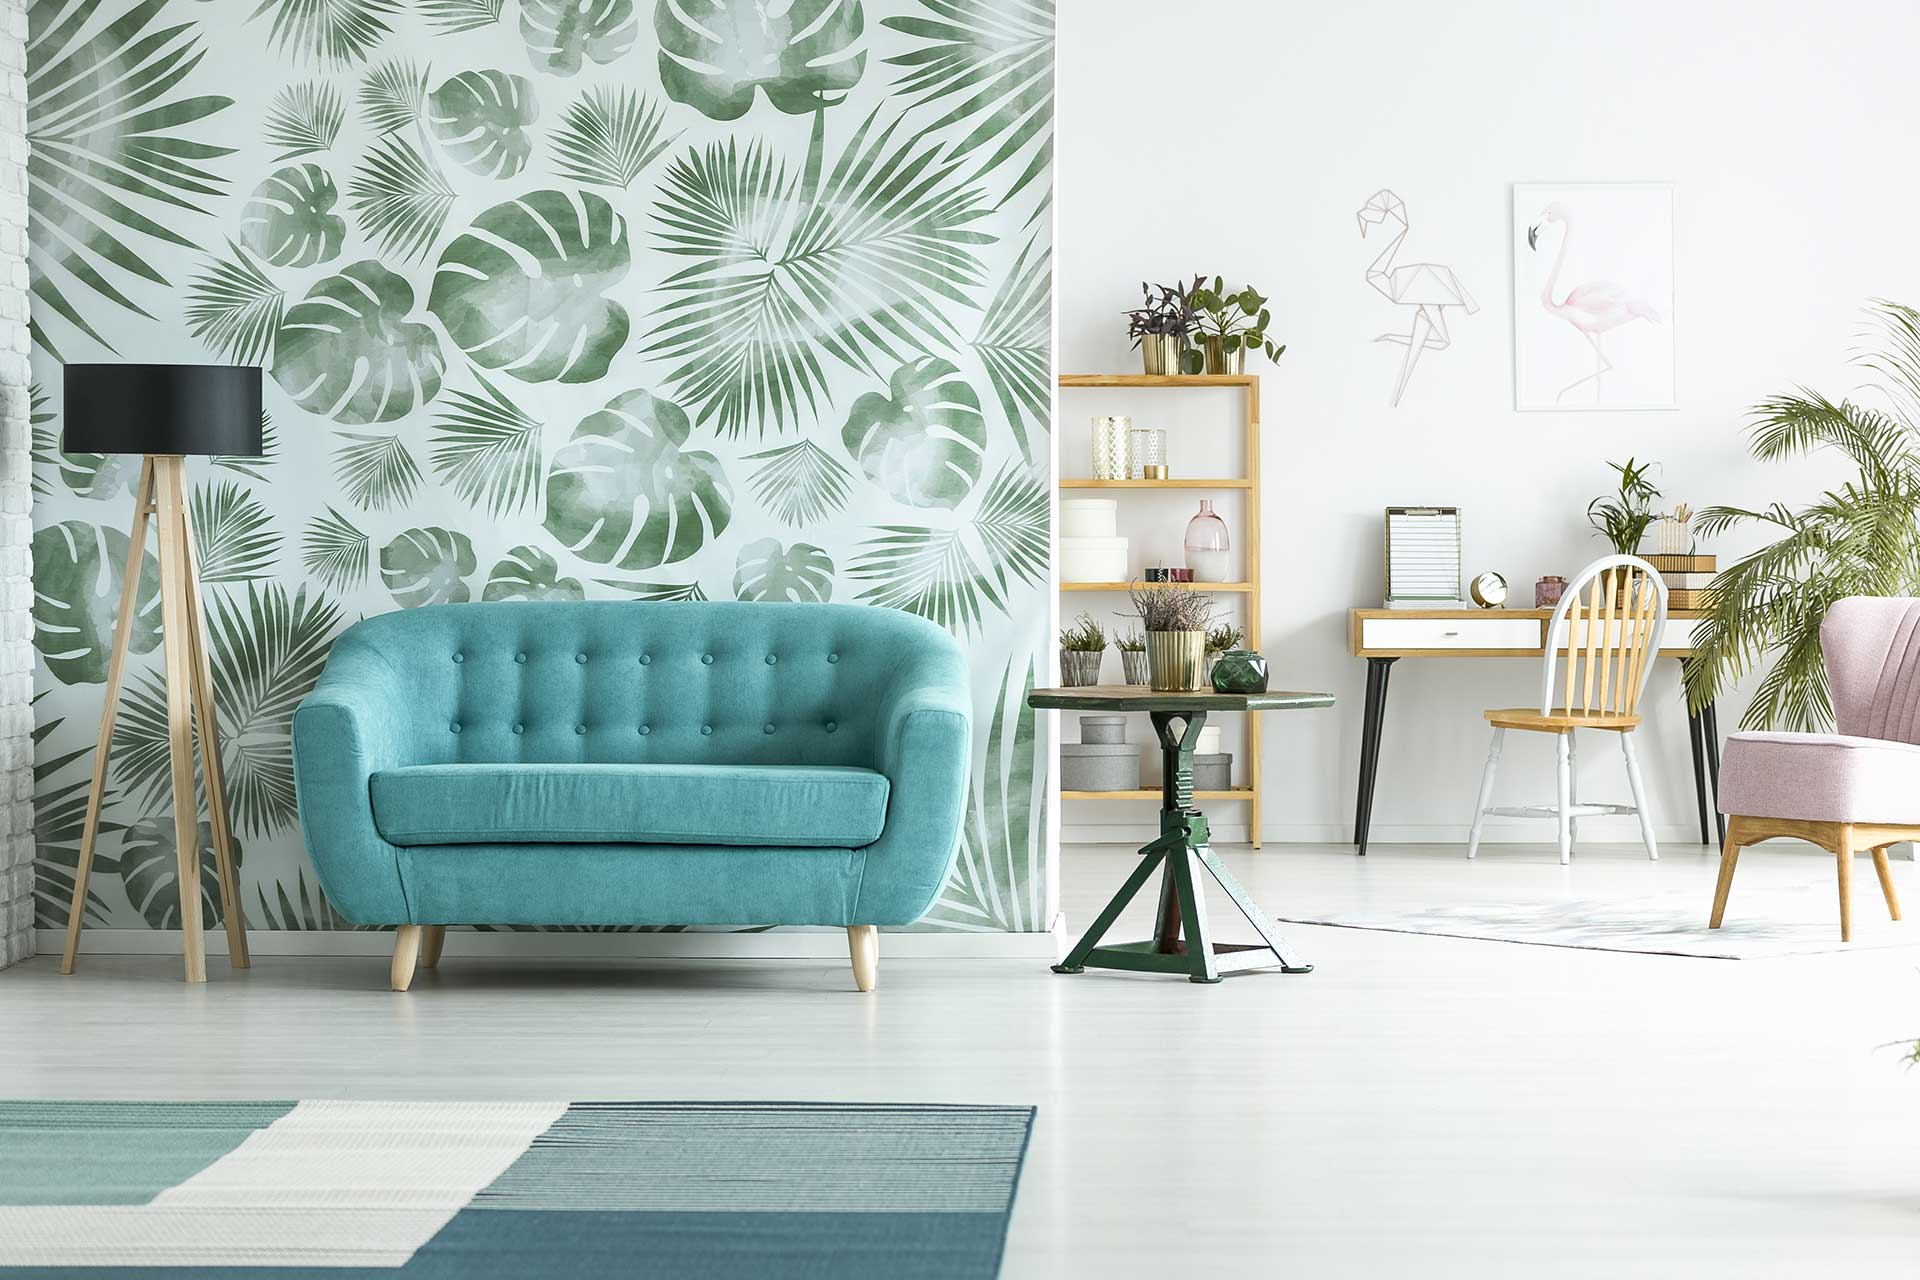 Wallpaper: Paint Over It or Remove It | Blog | Arizona Painting Company